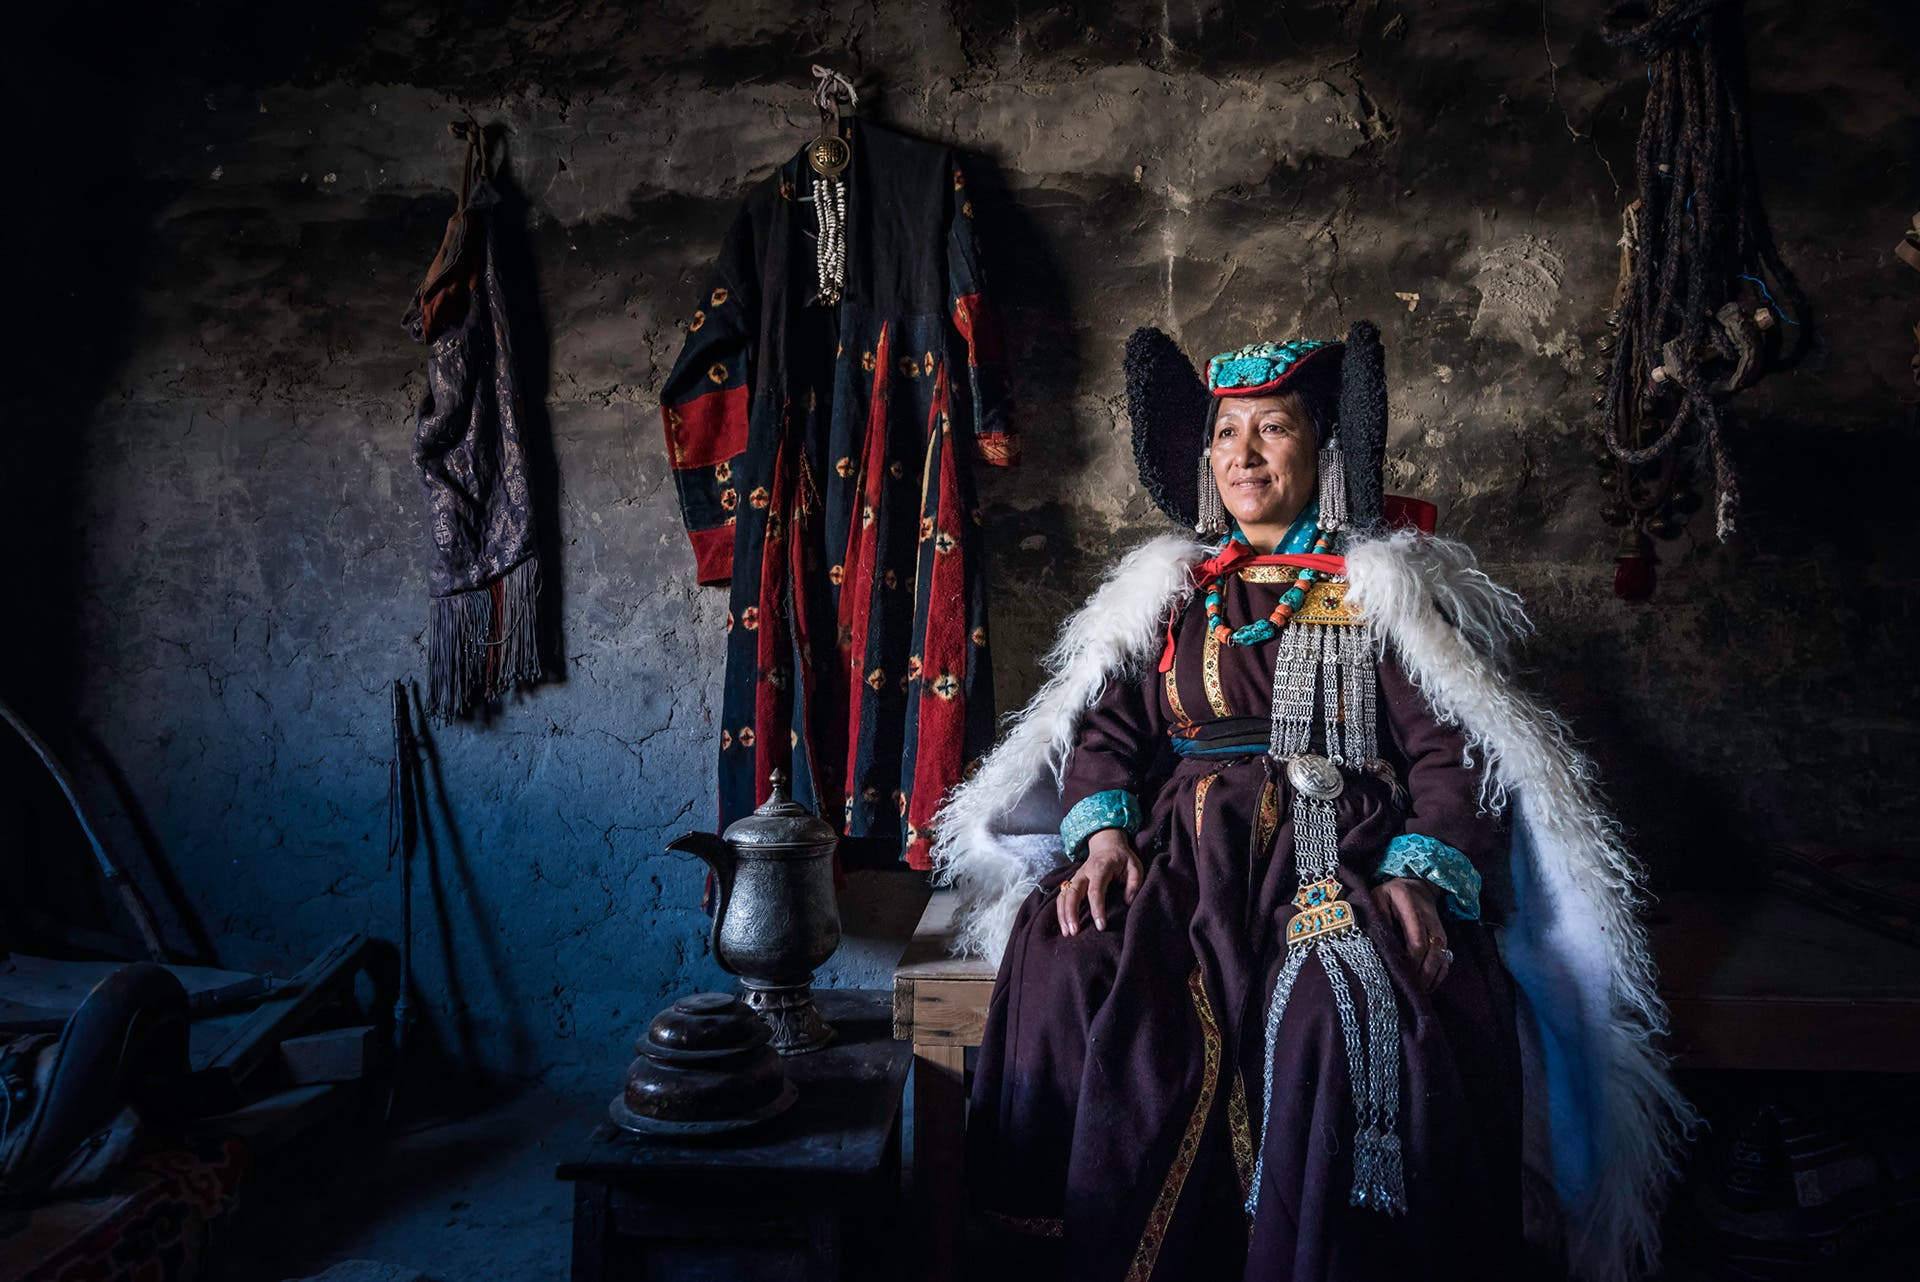 Manish Lakhani's Ladakh Portraits Give an Intimate Peek at Life in the Indian Himalayas